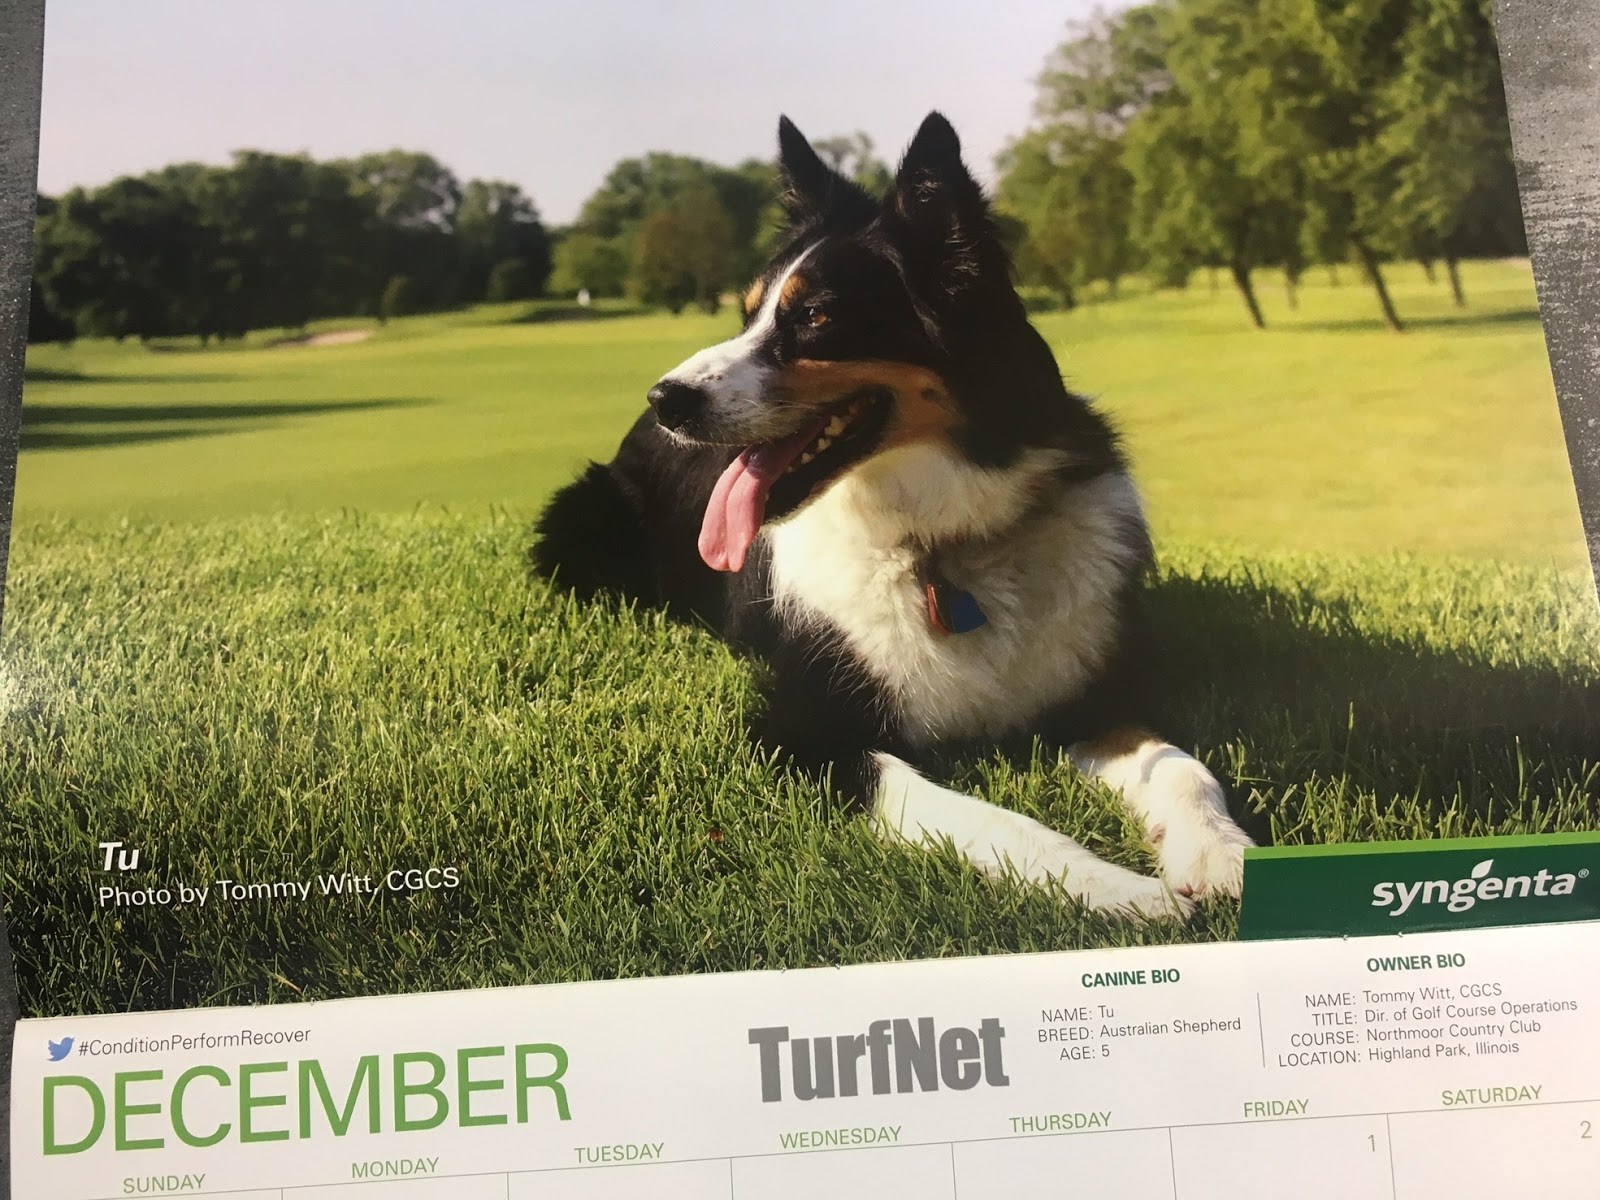 she was also recently chosen to be the december poster pet for the month of december for a nationally published golf course management calendar